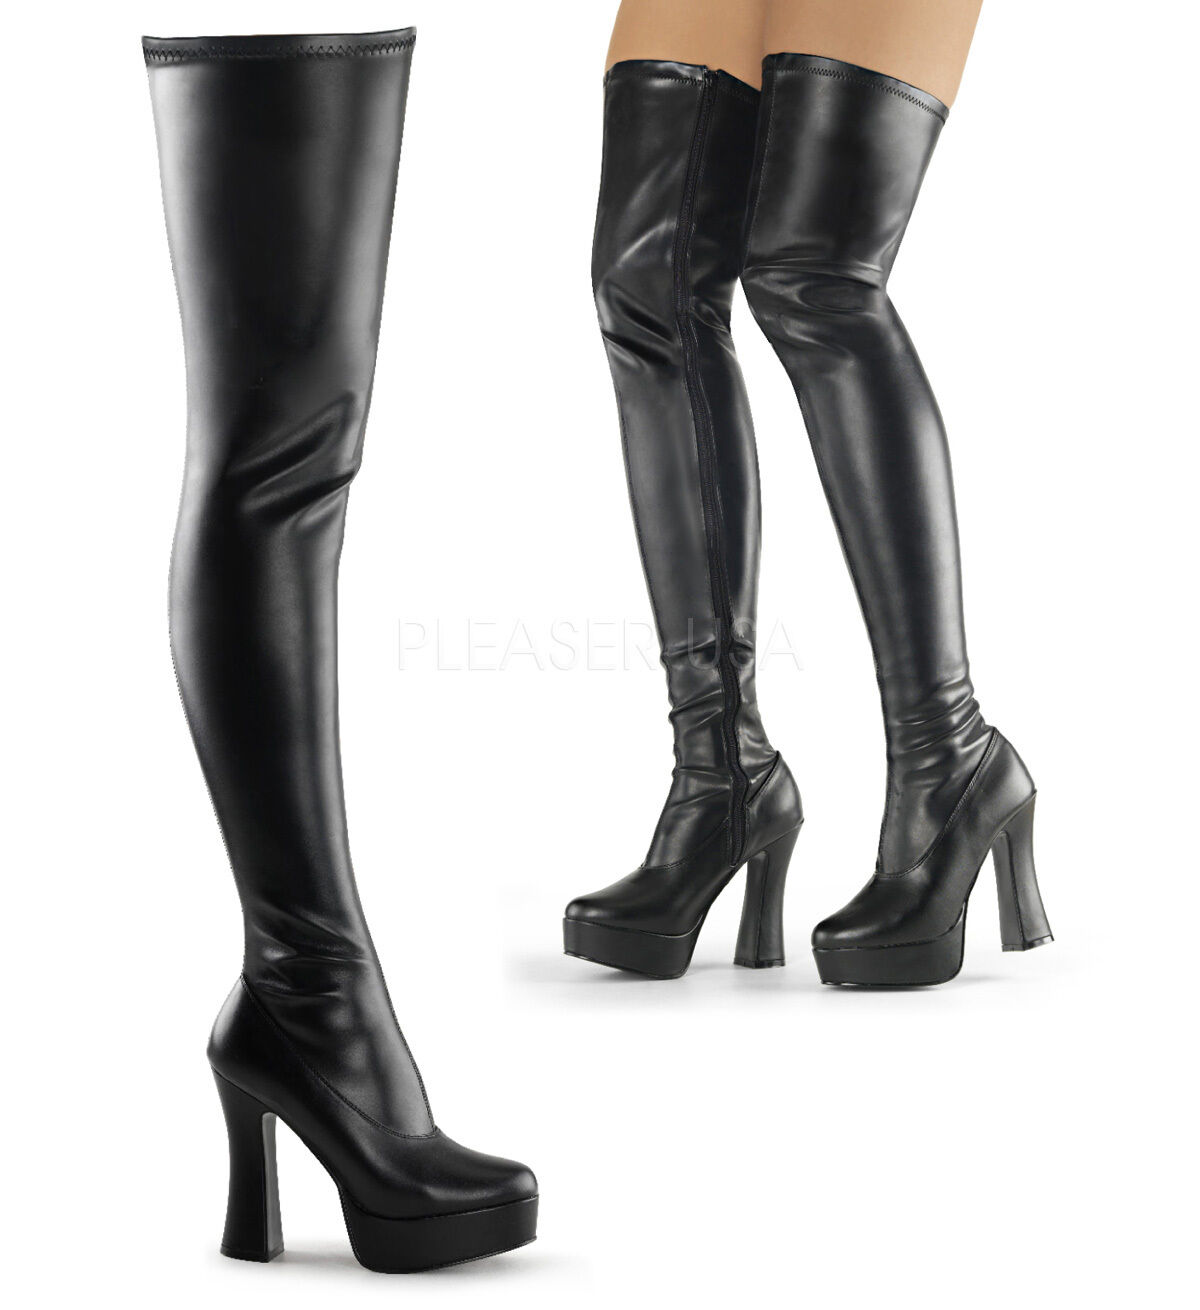 Electra 3000z Smooth Thigh High Platform Heel Stiefel Chunky Stack 5